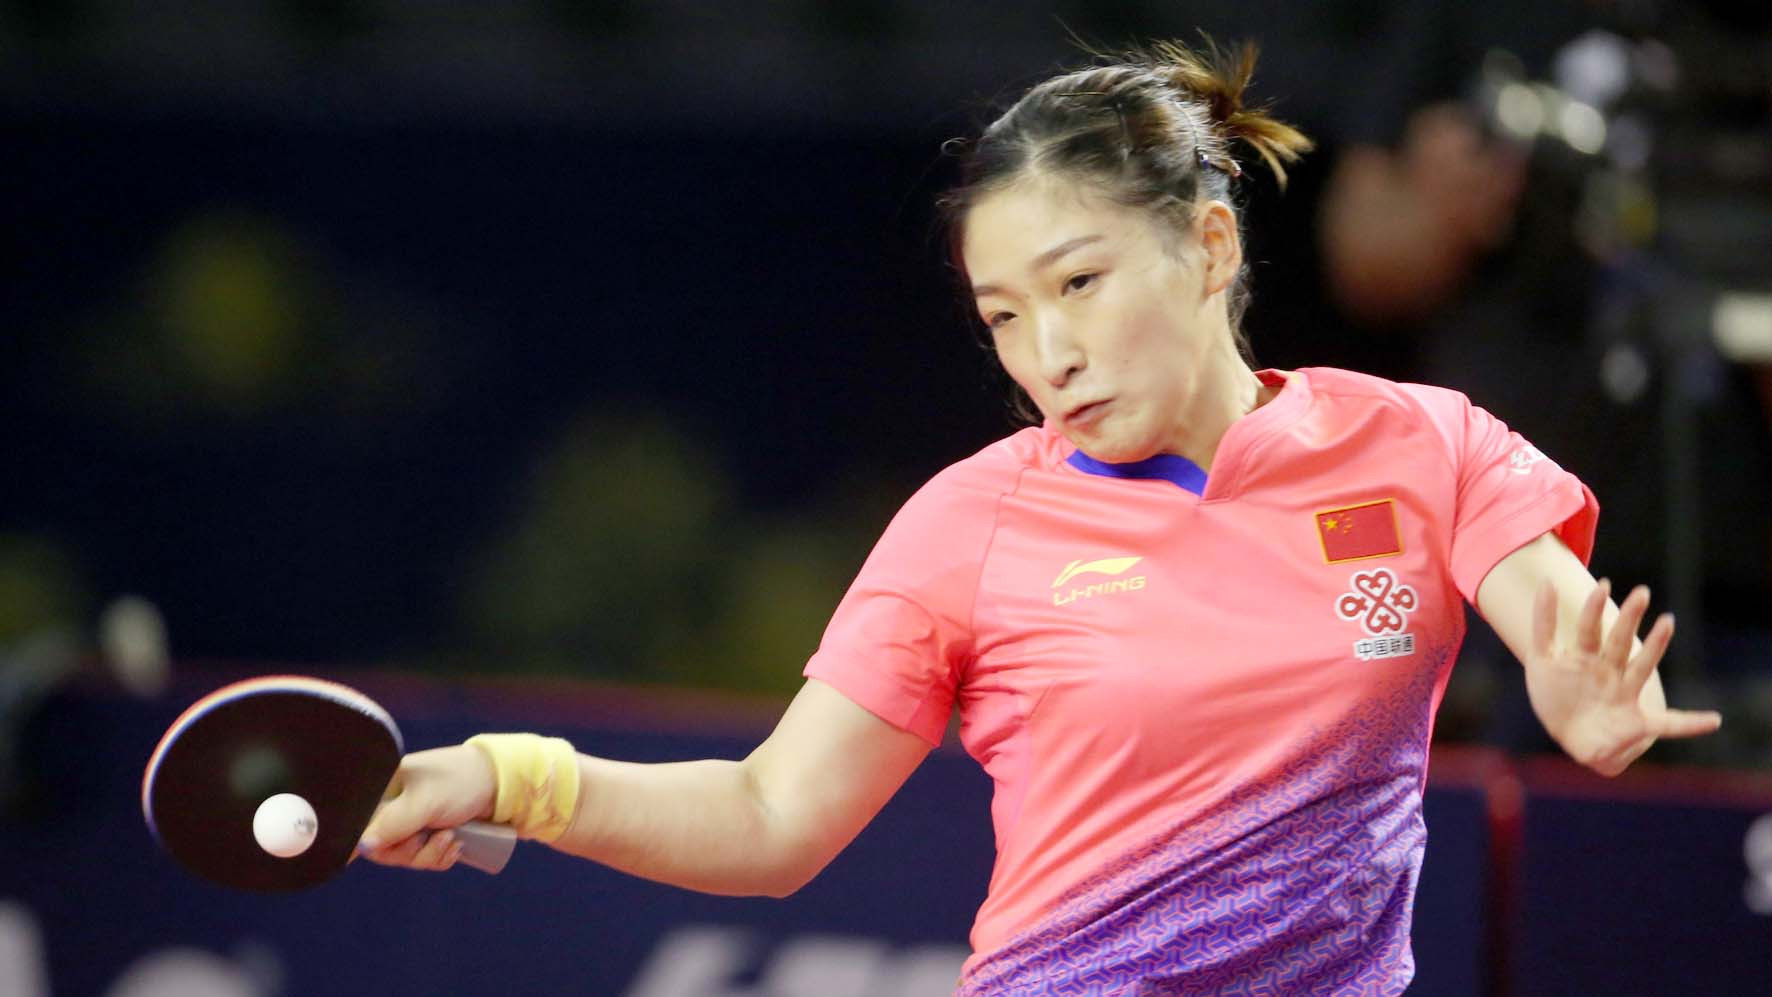 China's Liu Shiwen will not be competing at the ITTF Qatar Open in Doha ©Hussein Sayed/ITTF